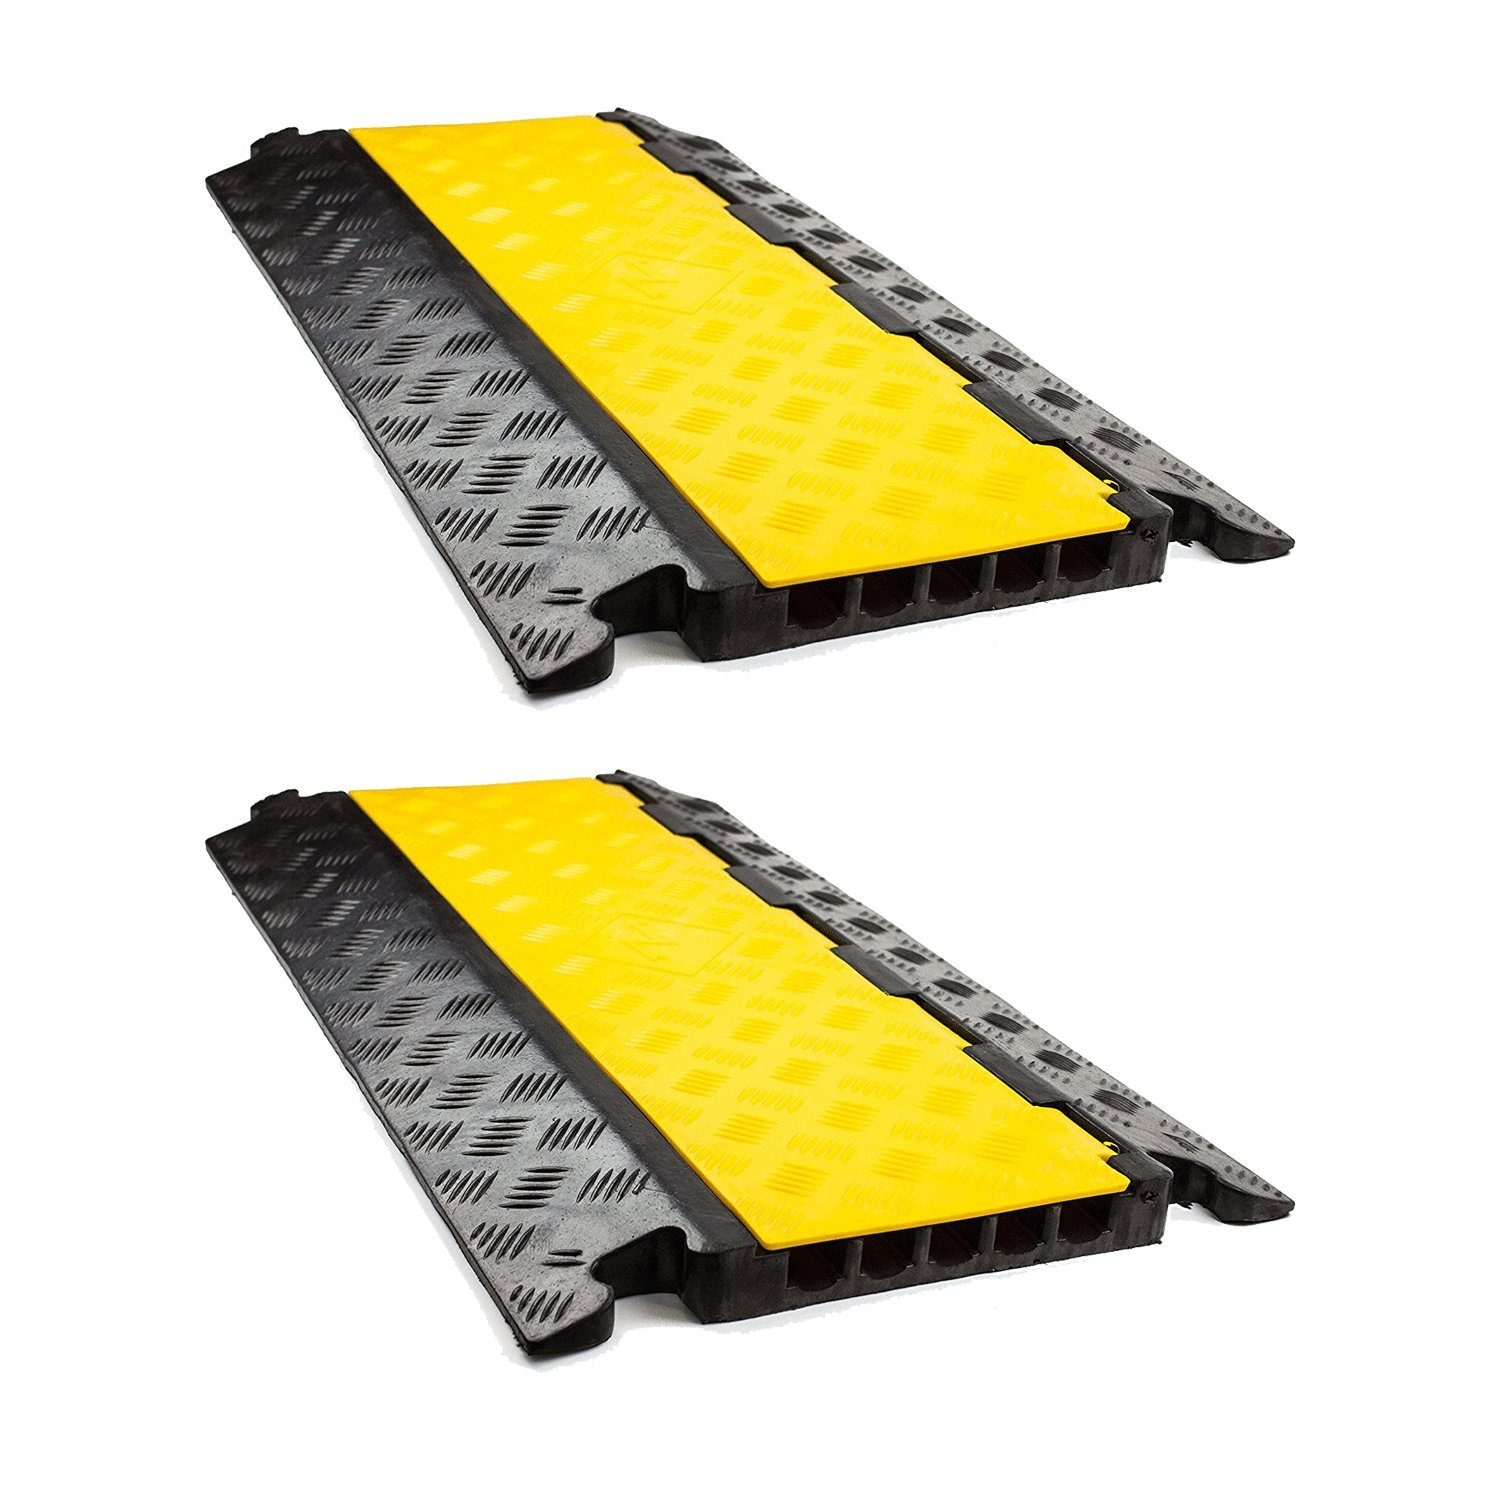 RK RK-CP-5C 5 Channel Modular Rubber Cable Protector Ramp (Straight, Qty:2)